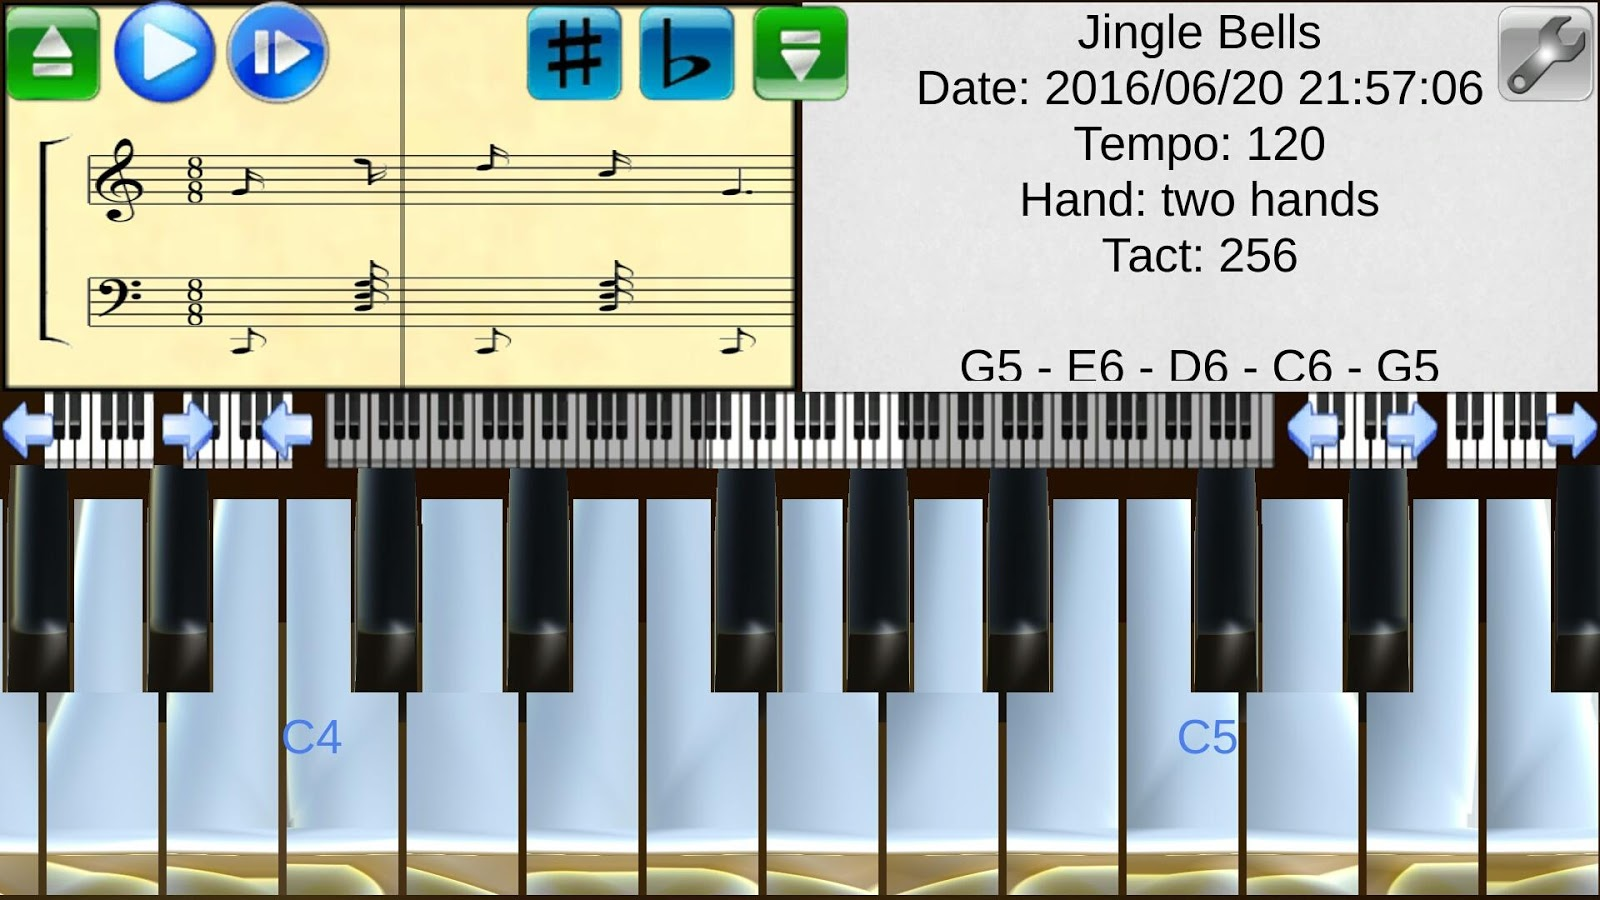 Piano studio android apps on google play piano studio screenshot hexwebz Gallery